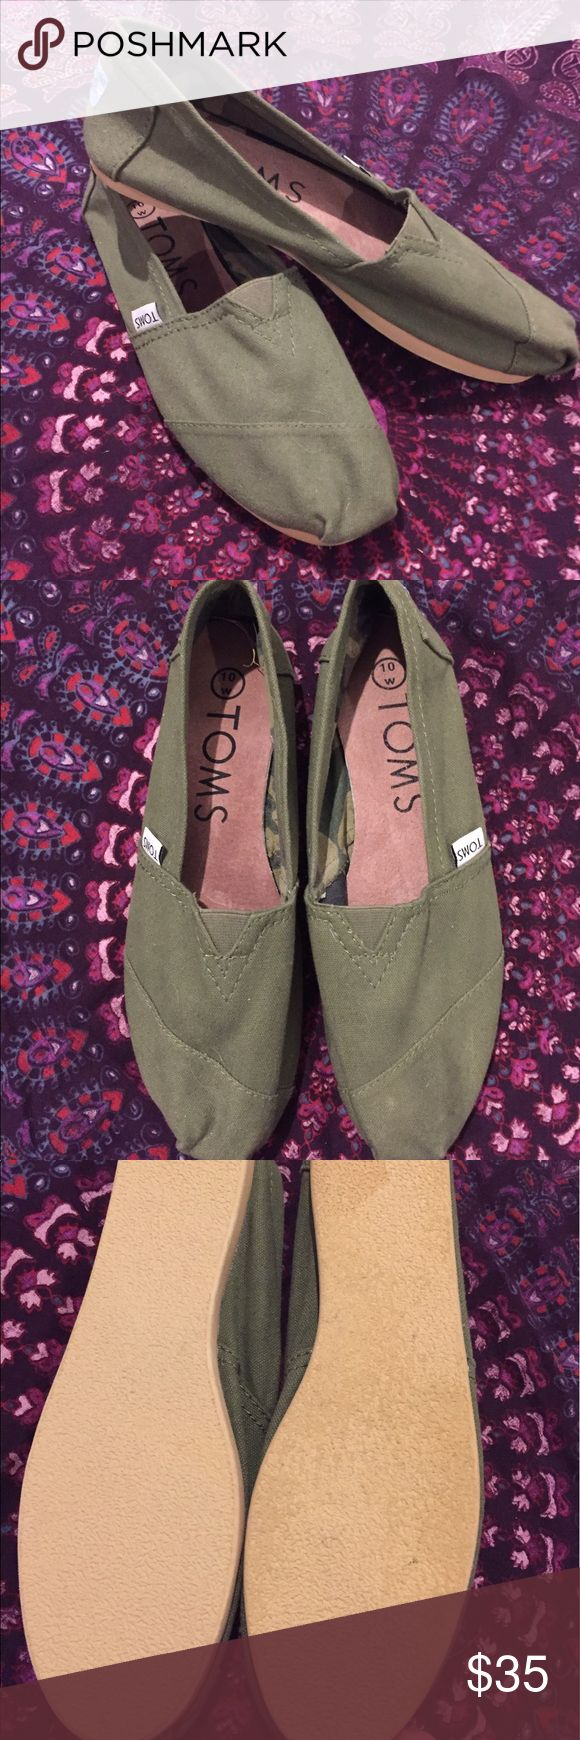 TOMS 1st Edition Olive Camo Canvas Slip-on Shoes These were purchased when TOMS first launched their shoes. Never been worn and have been in storage for years. These are a size 10 but they seem small for a 10 and they're a little narrow for my feet. They have camouflage print inside. TOMS Shoes Flats & Loafers